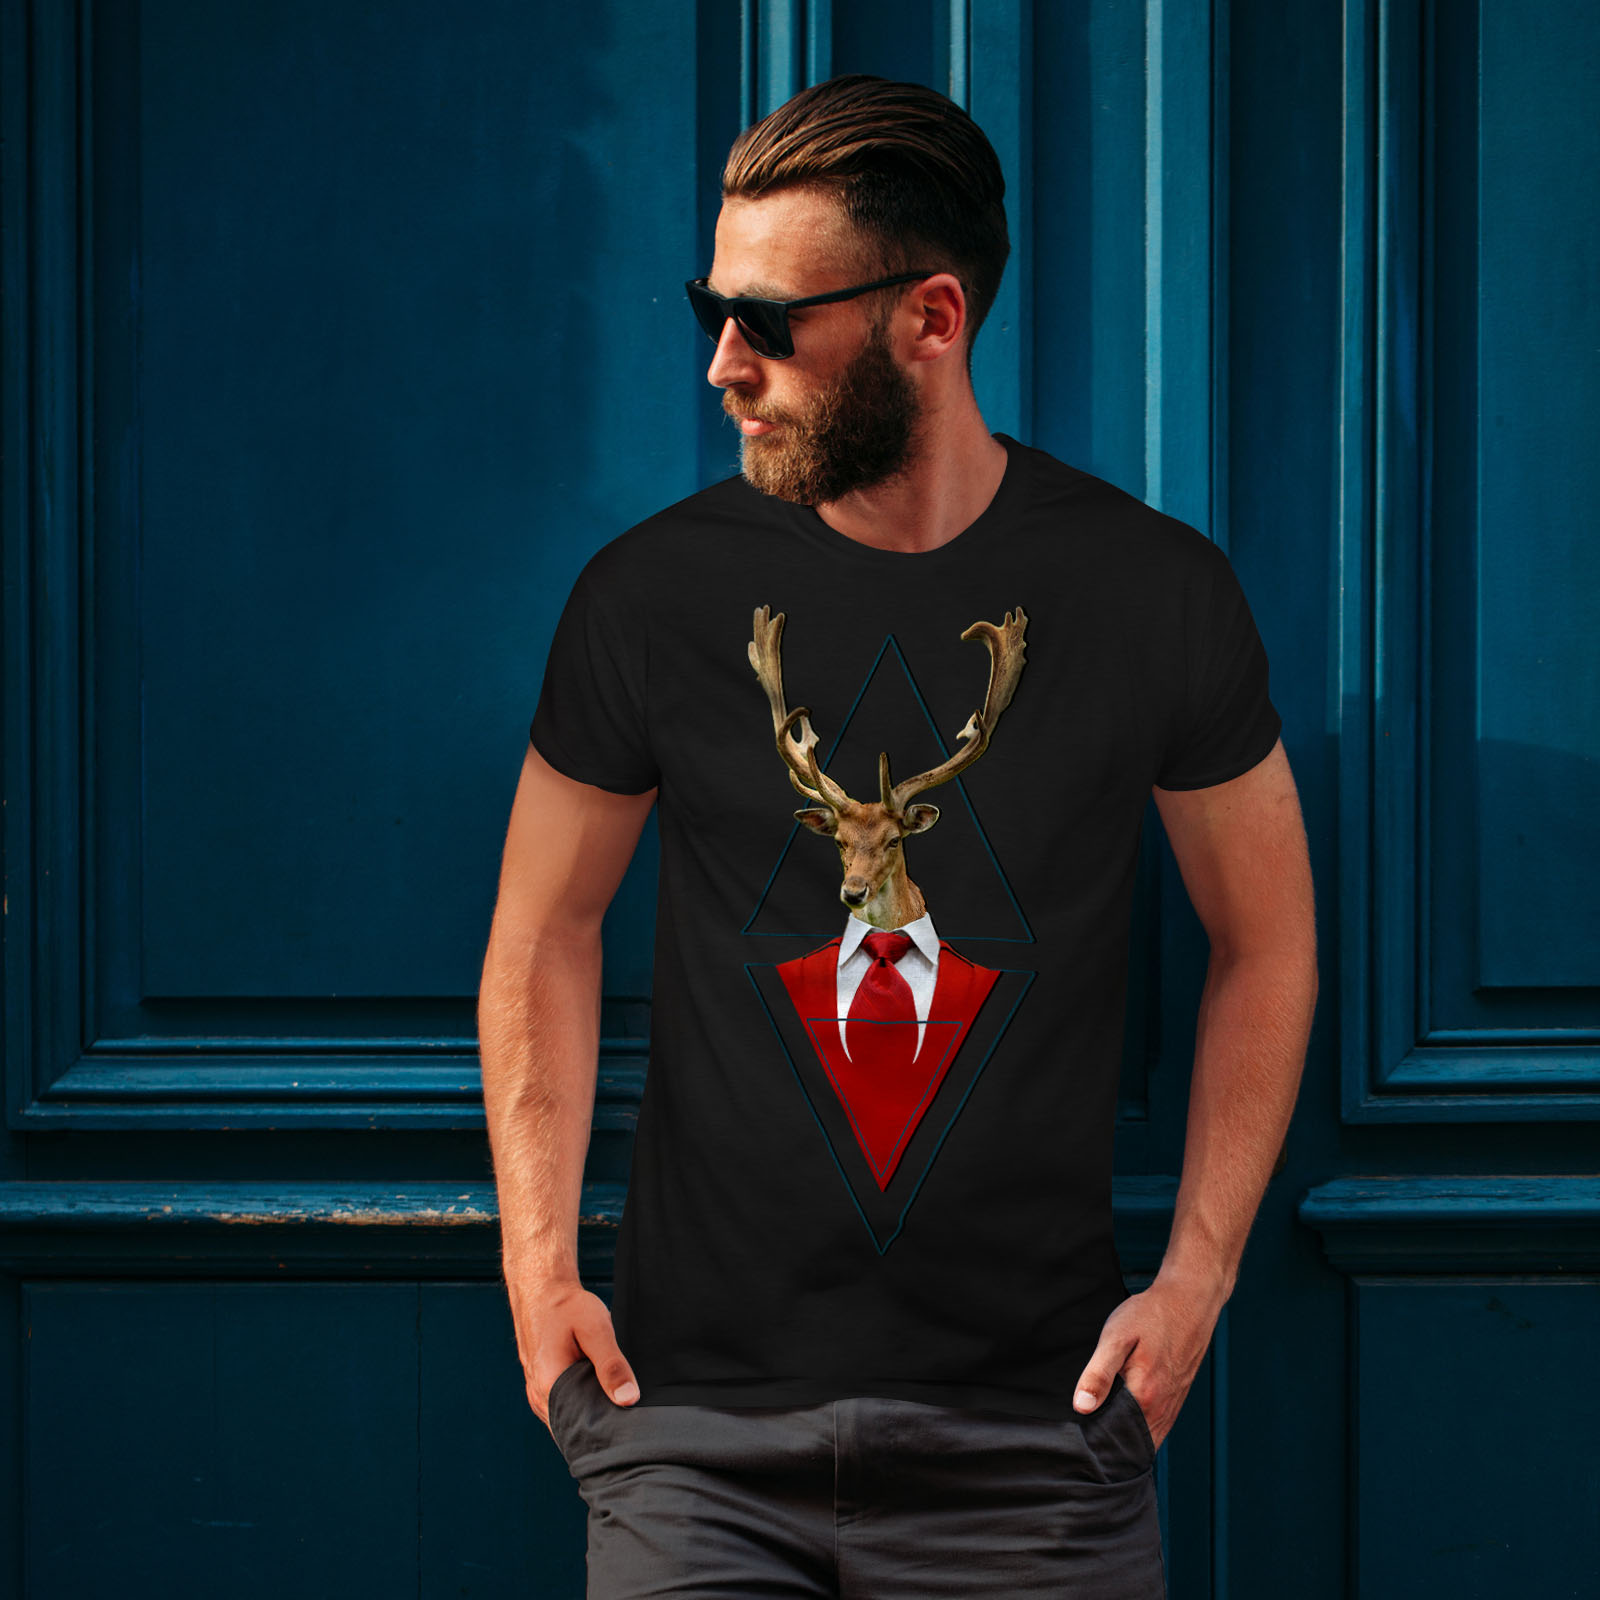 Wellcoda-Abstract-Animal-T-shirt-Homme-chic-design-graphique-imprime-Tee miniature 4